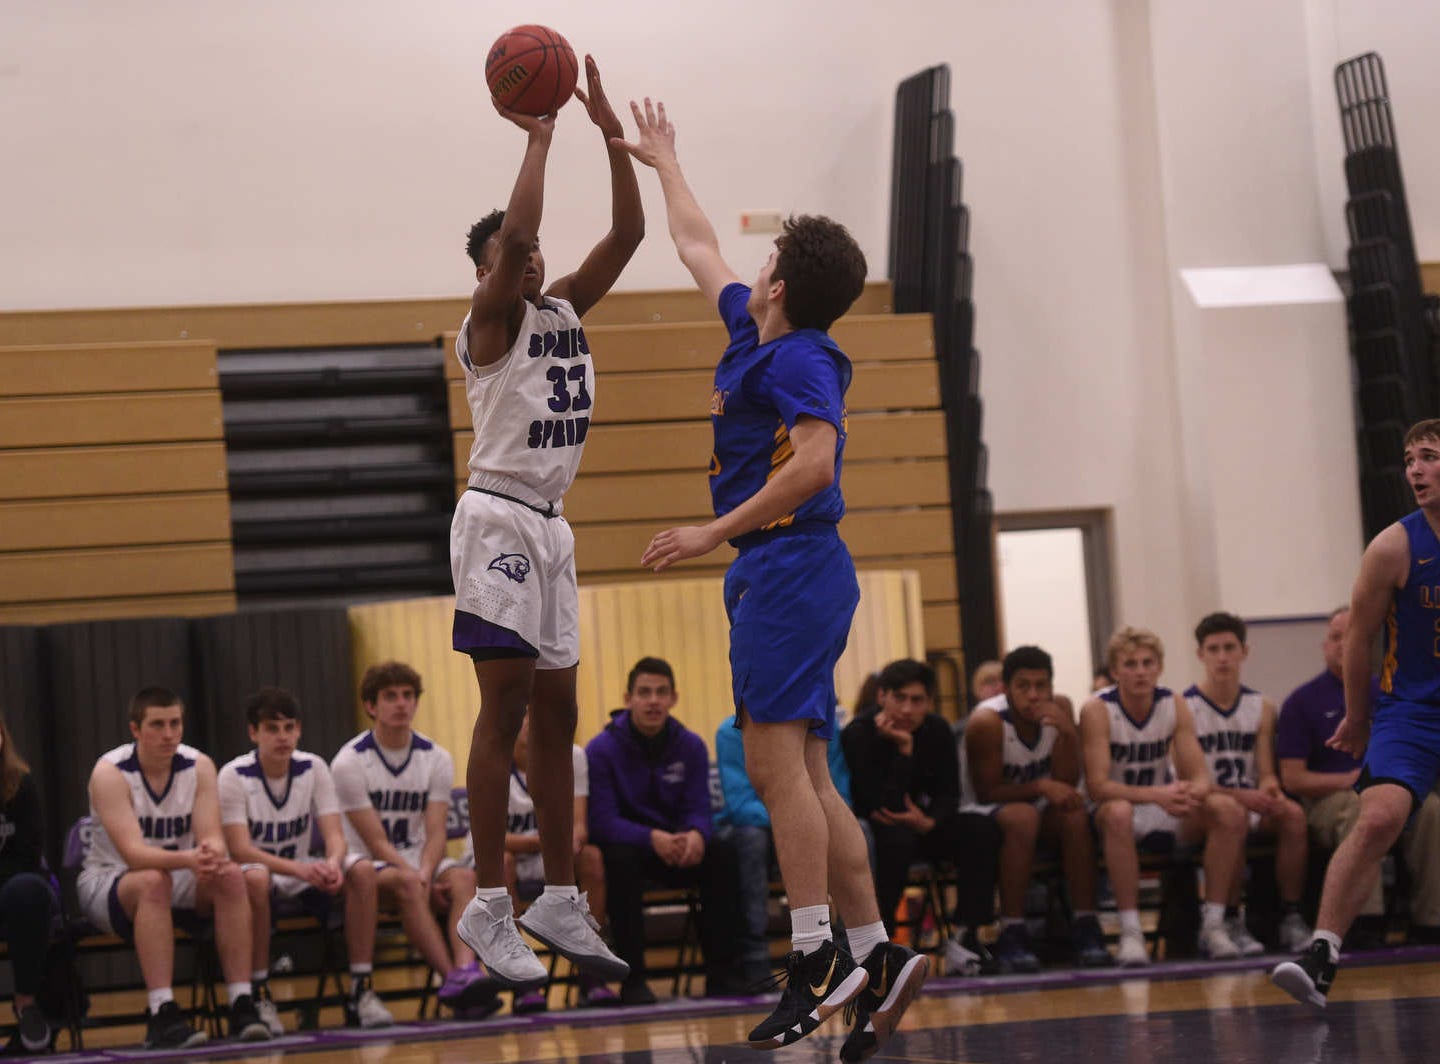 Spanish Springs takes on Lincoln (Calif.) during their basketball game in Reno on Jan. 4, 2019.